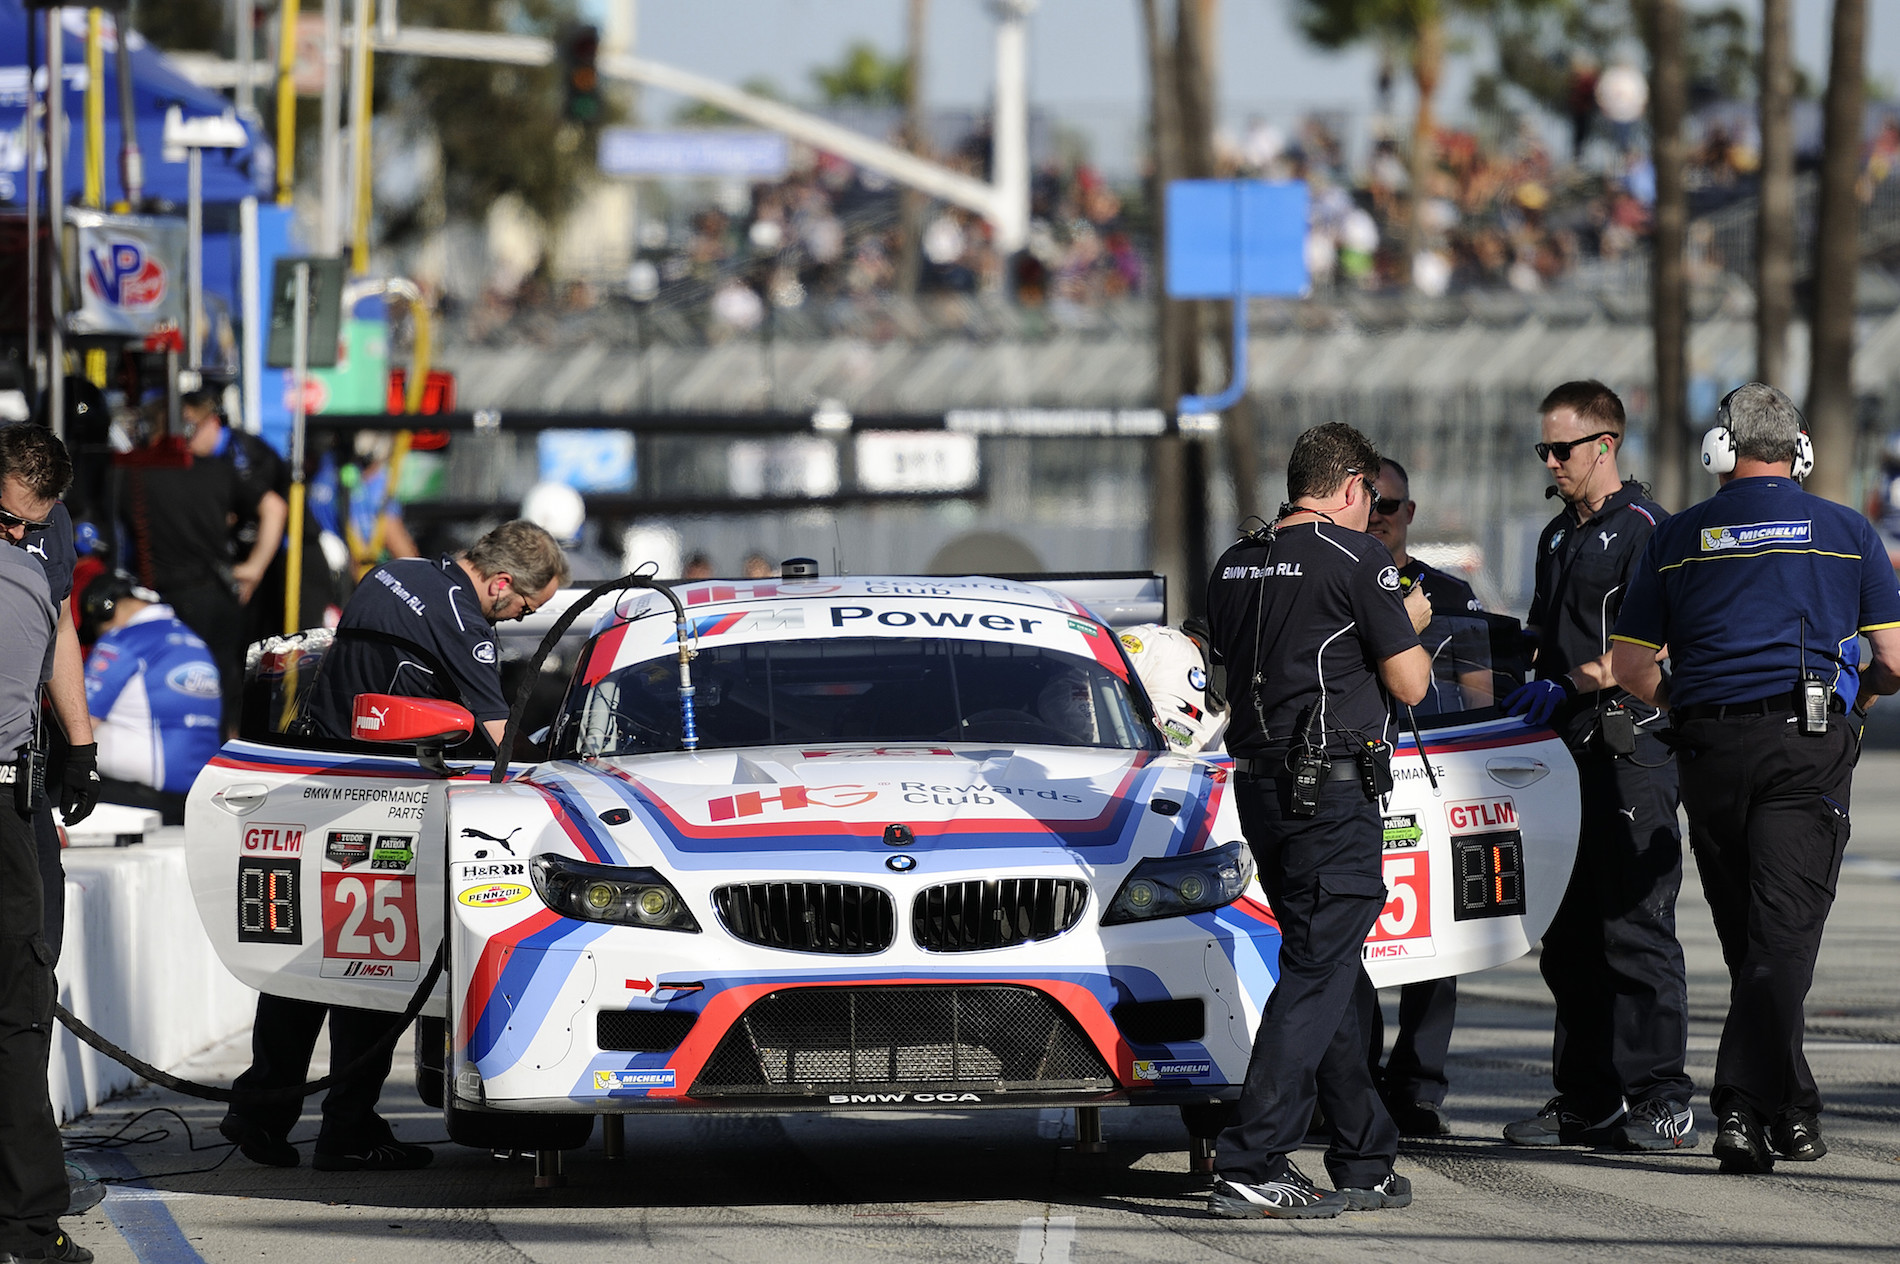 Bmw team rll results from long beach 2015 for Long beach motor sports